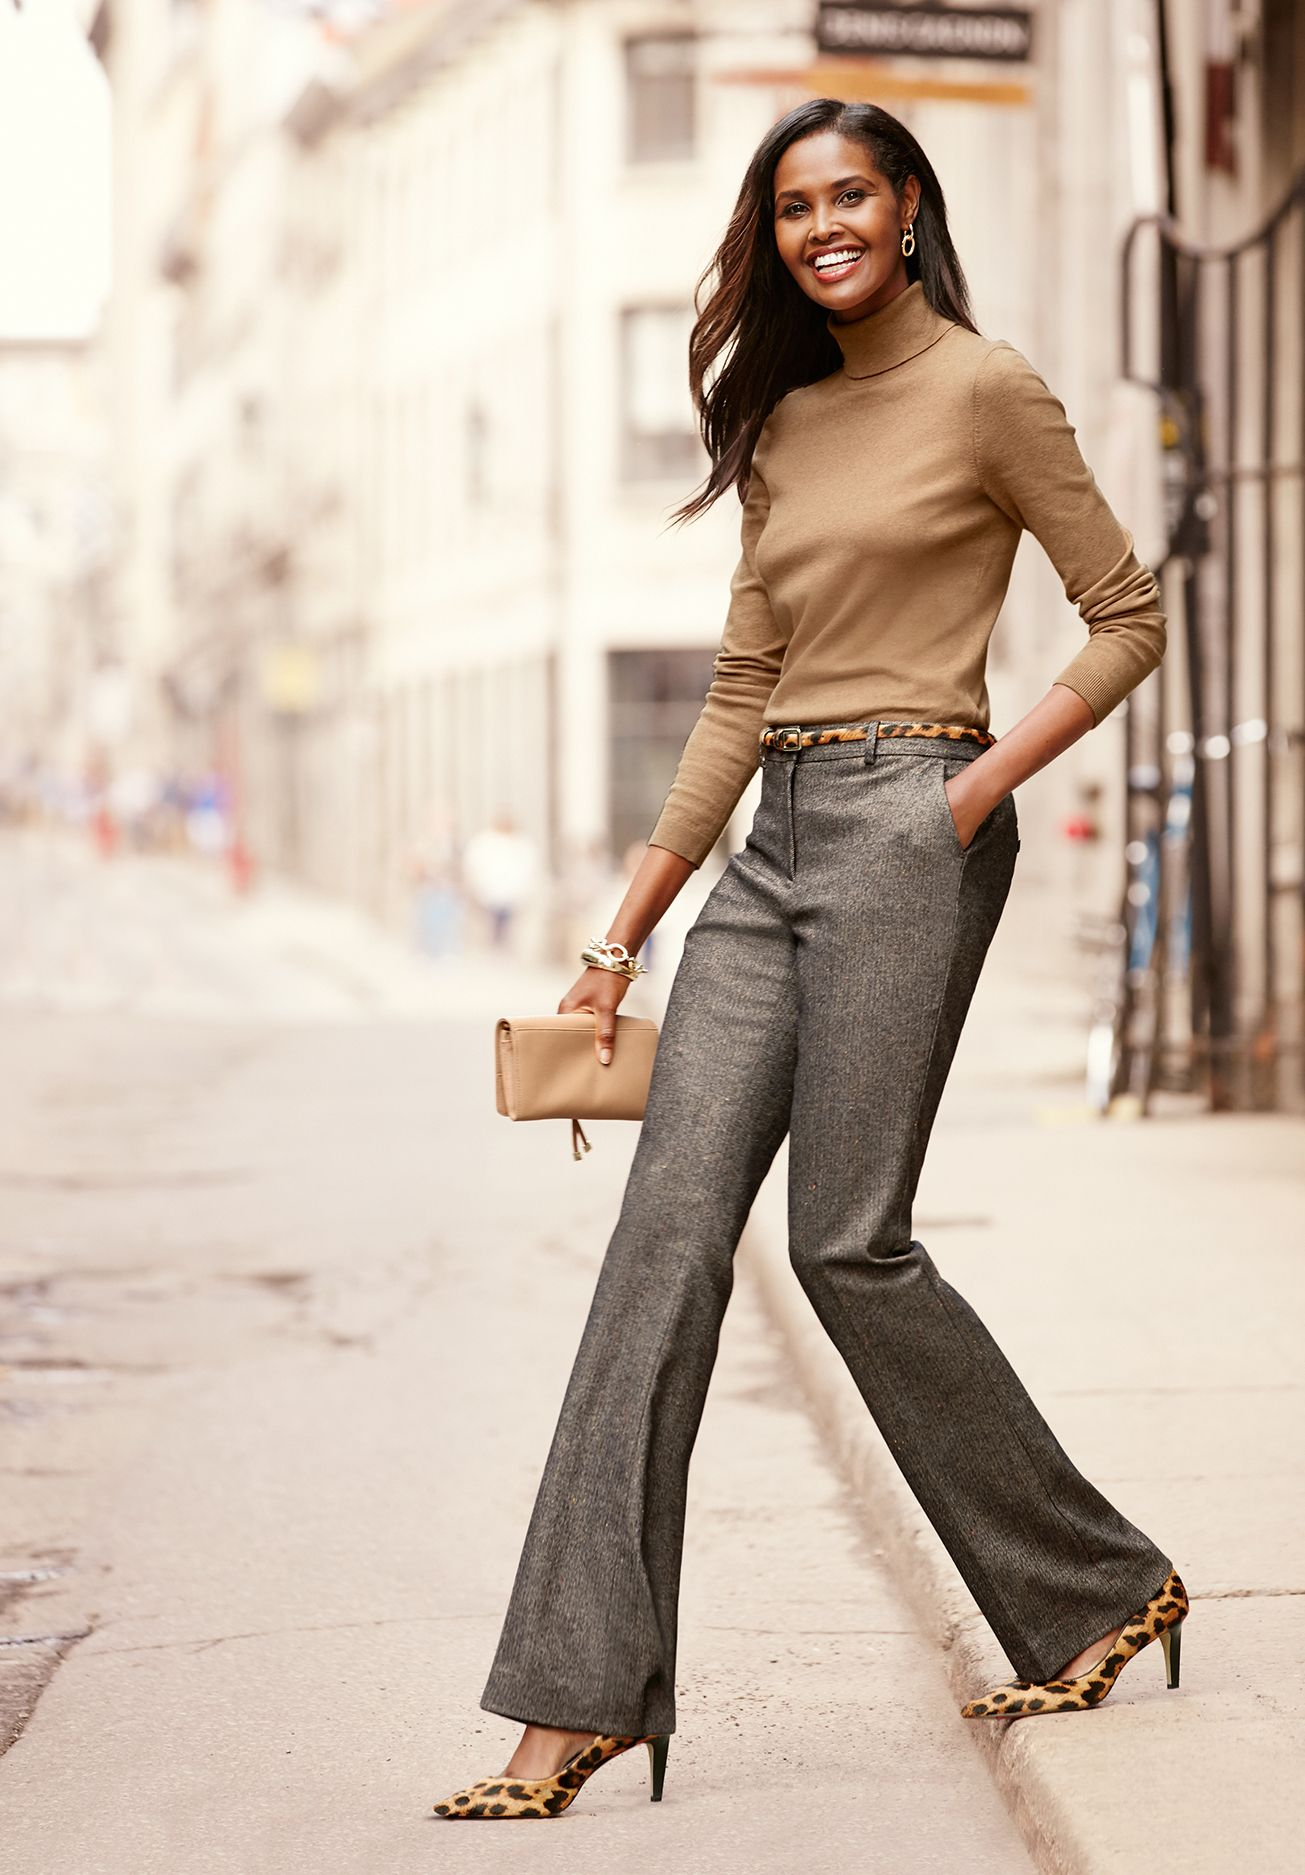 Fall's most fashionable pant: slightly above the waist ...